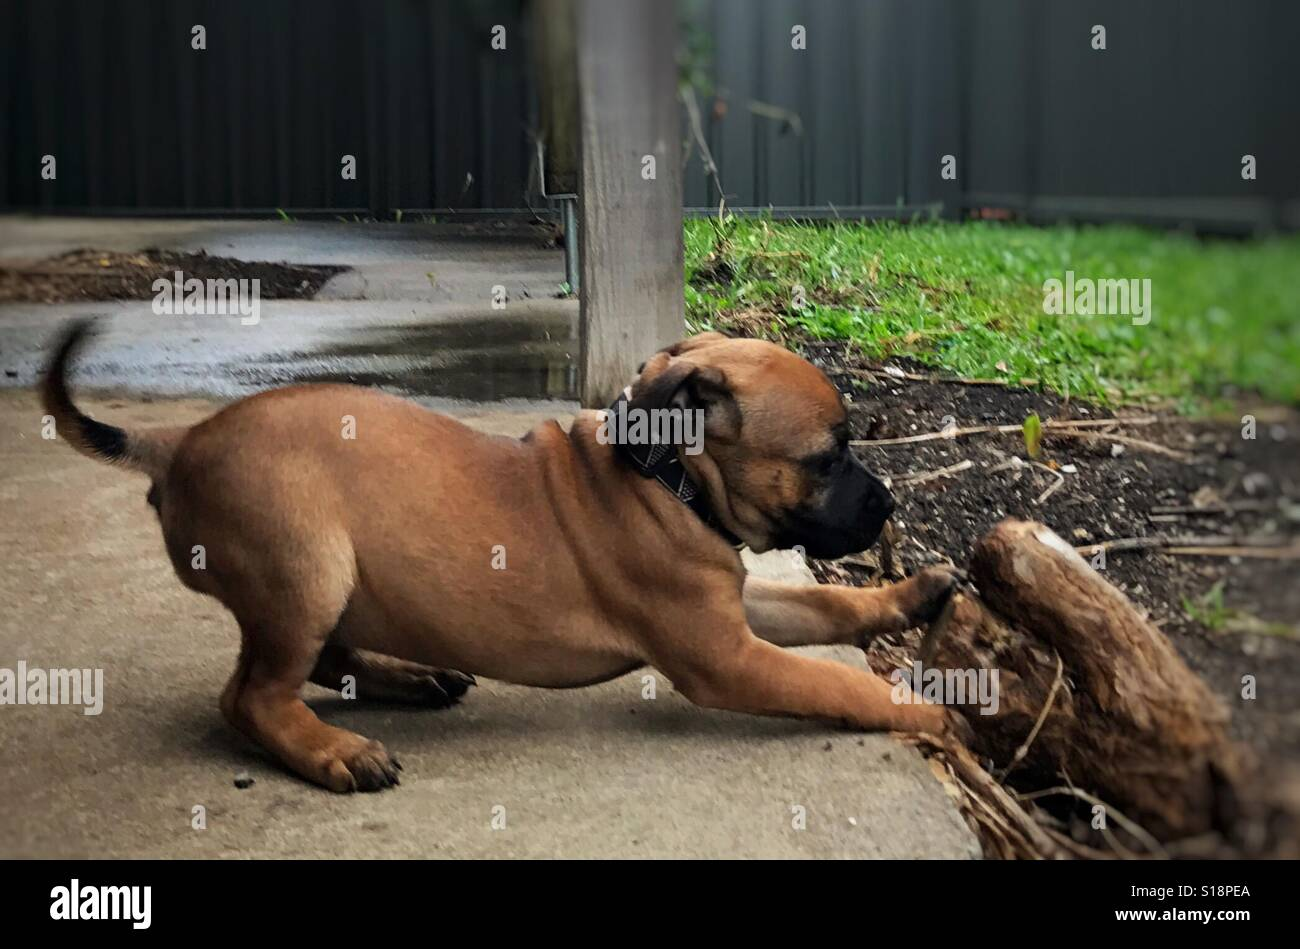 Staffordshire puppy playing - Stock Image